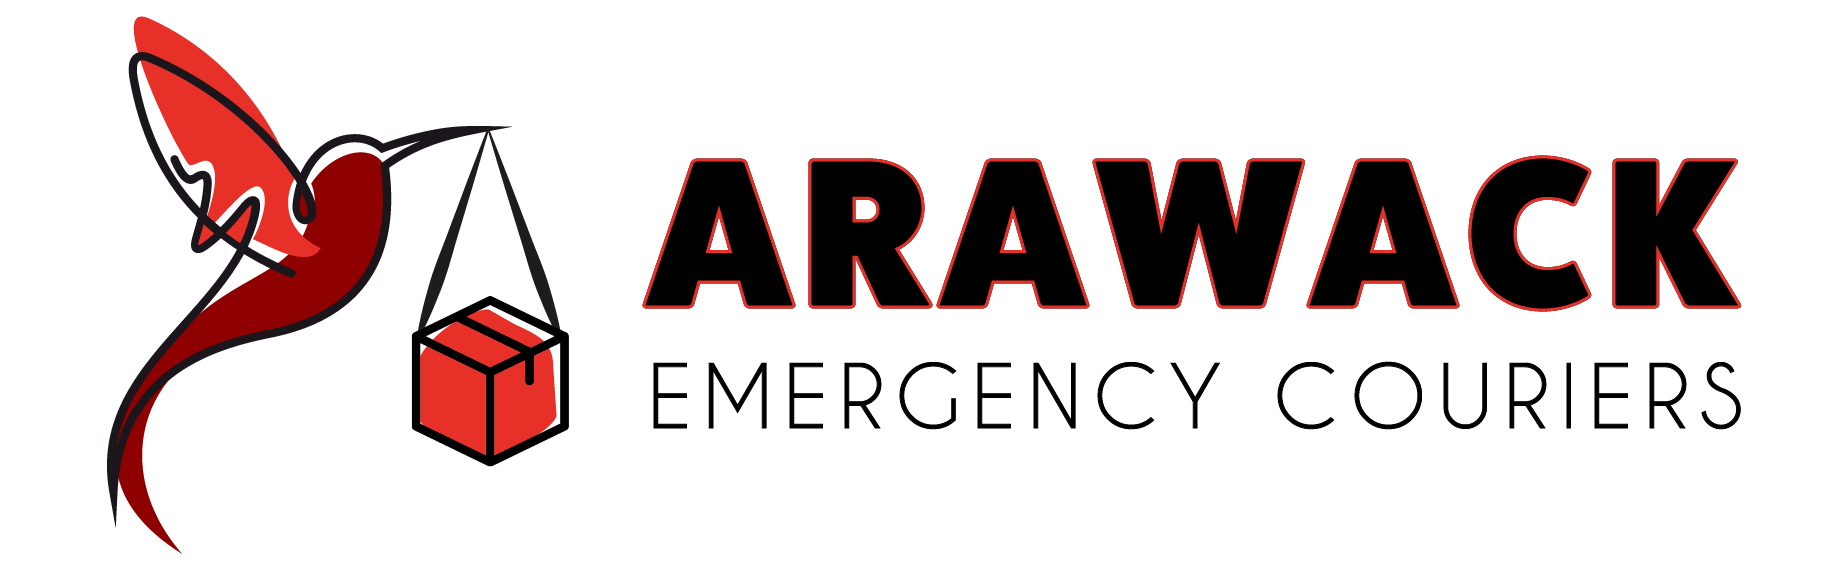 Arawack Emergency Couriers